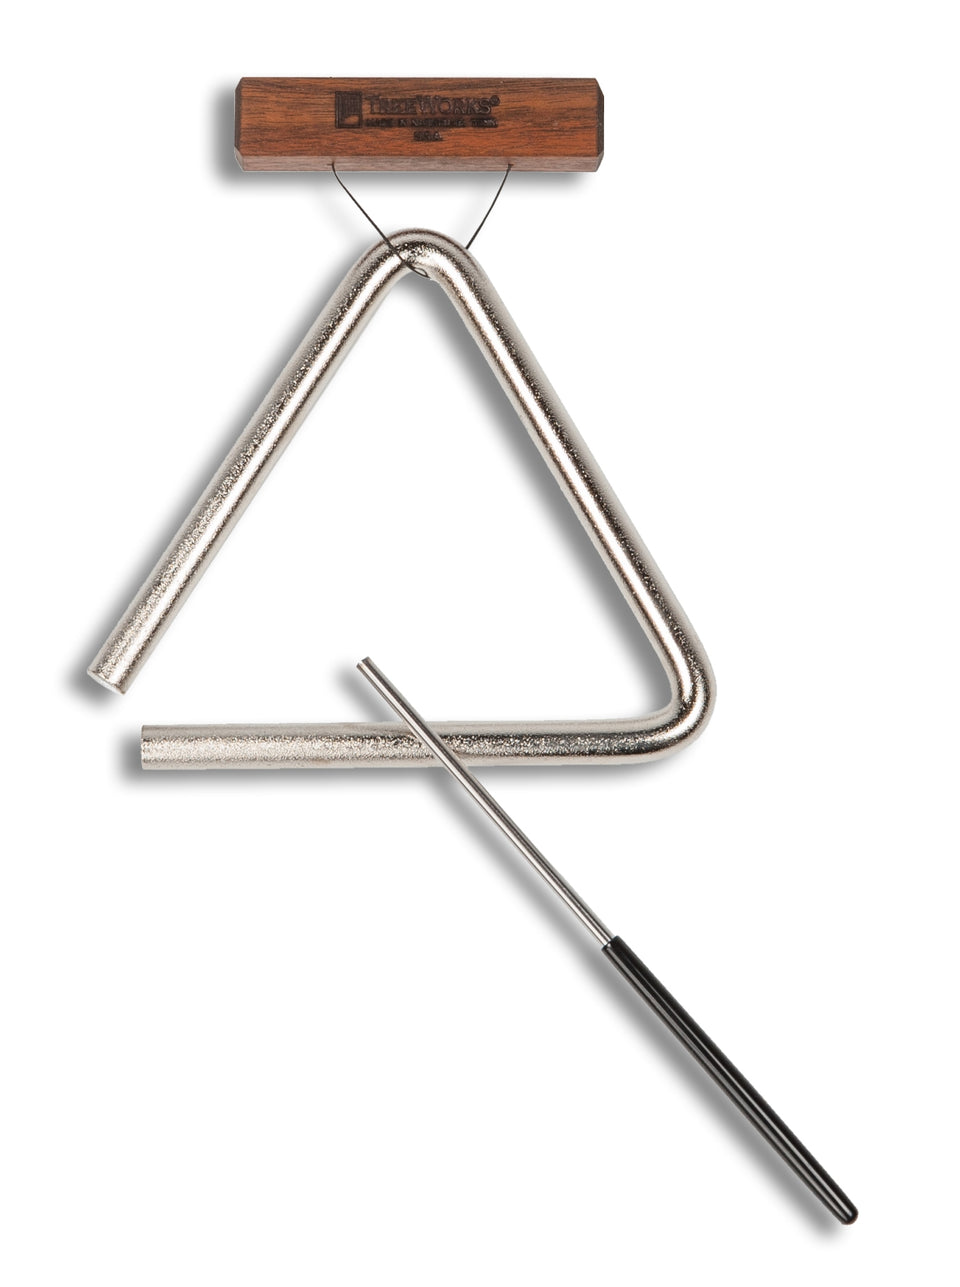 TreeWorks TRE-HS06 6-Inch Triangle W/ Beater/Striker & Holder